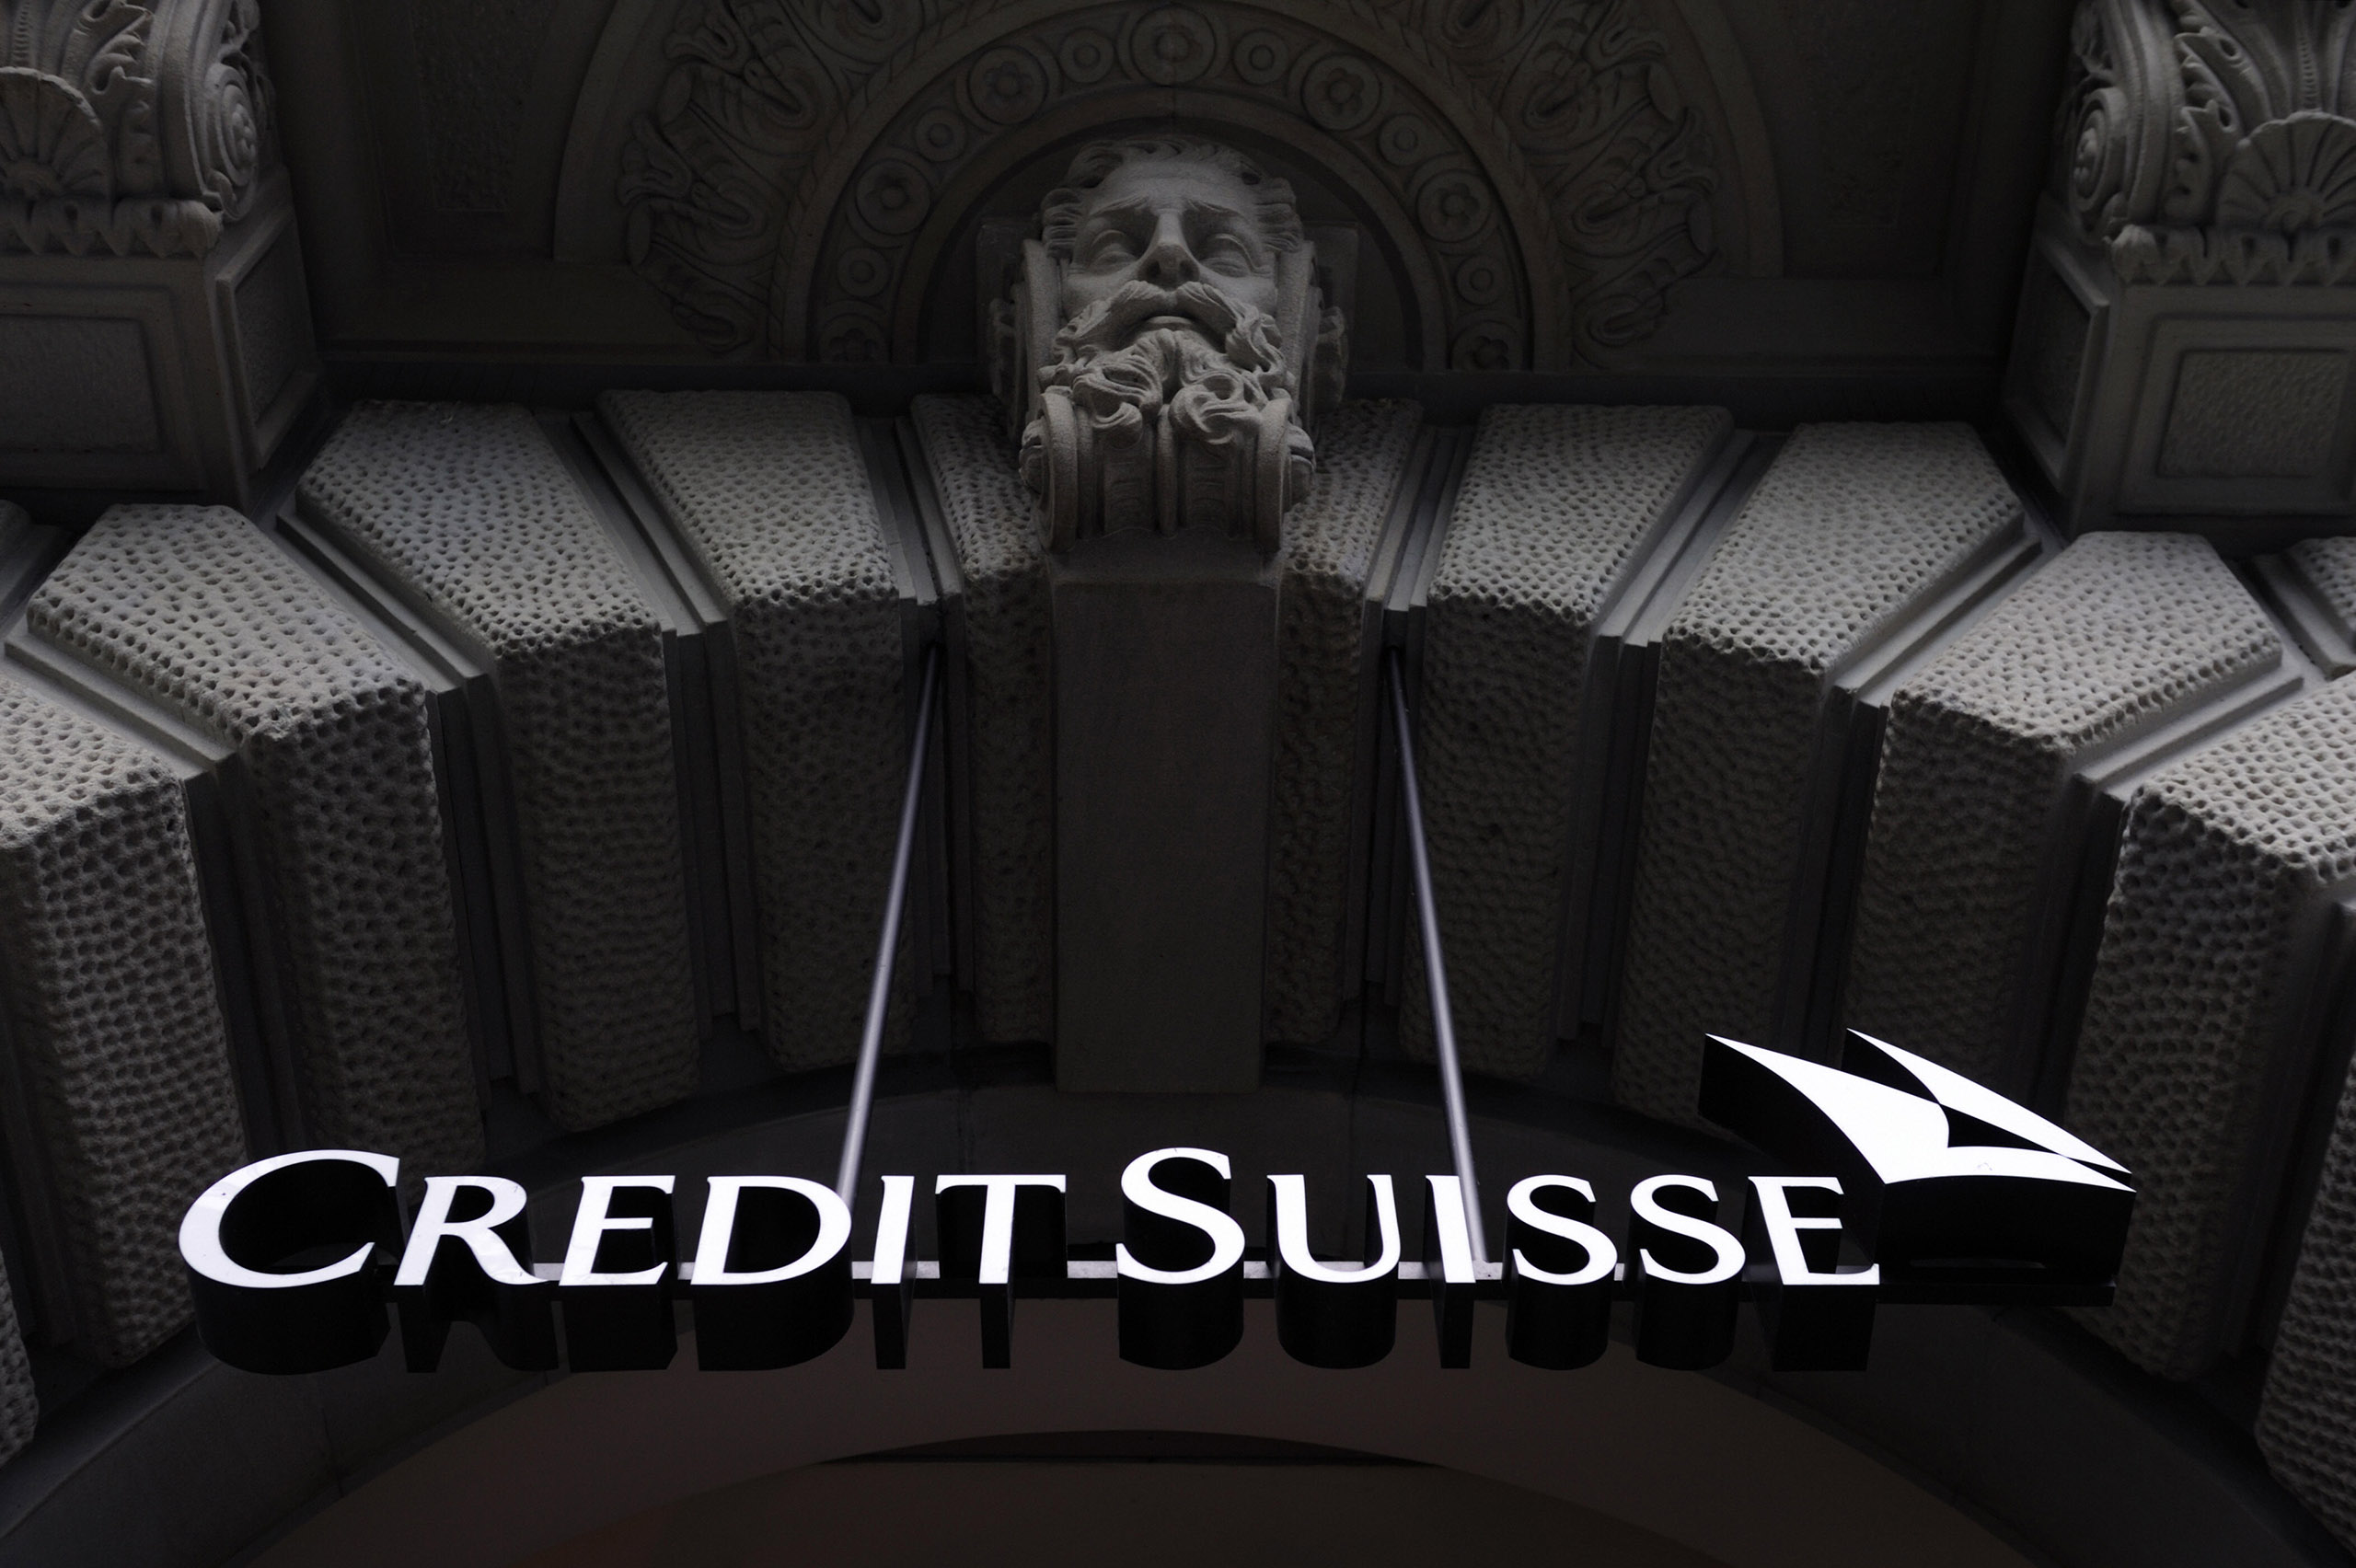 Photo taken on December 6, 2008 shows the logo of the Credit Suisse at one of the Swiss bank branch in Zurich.